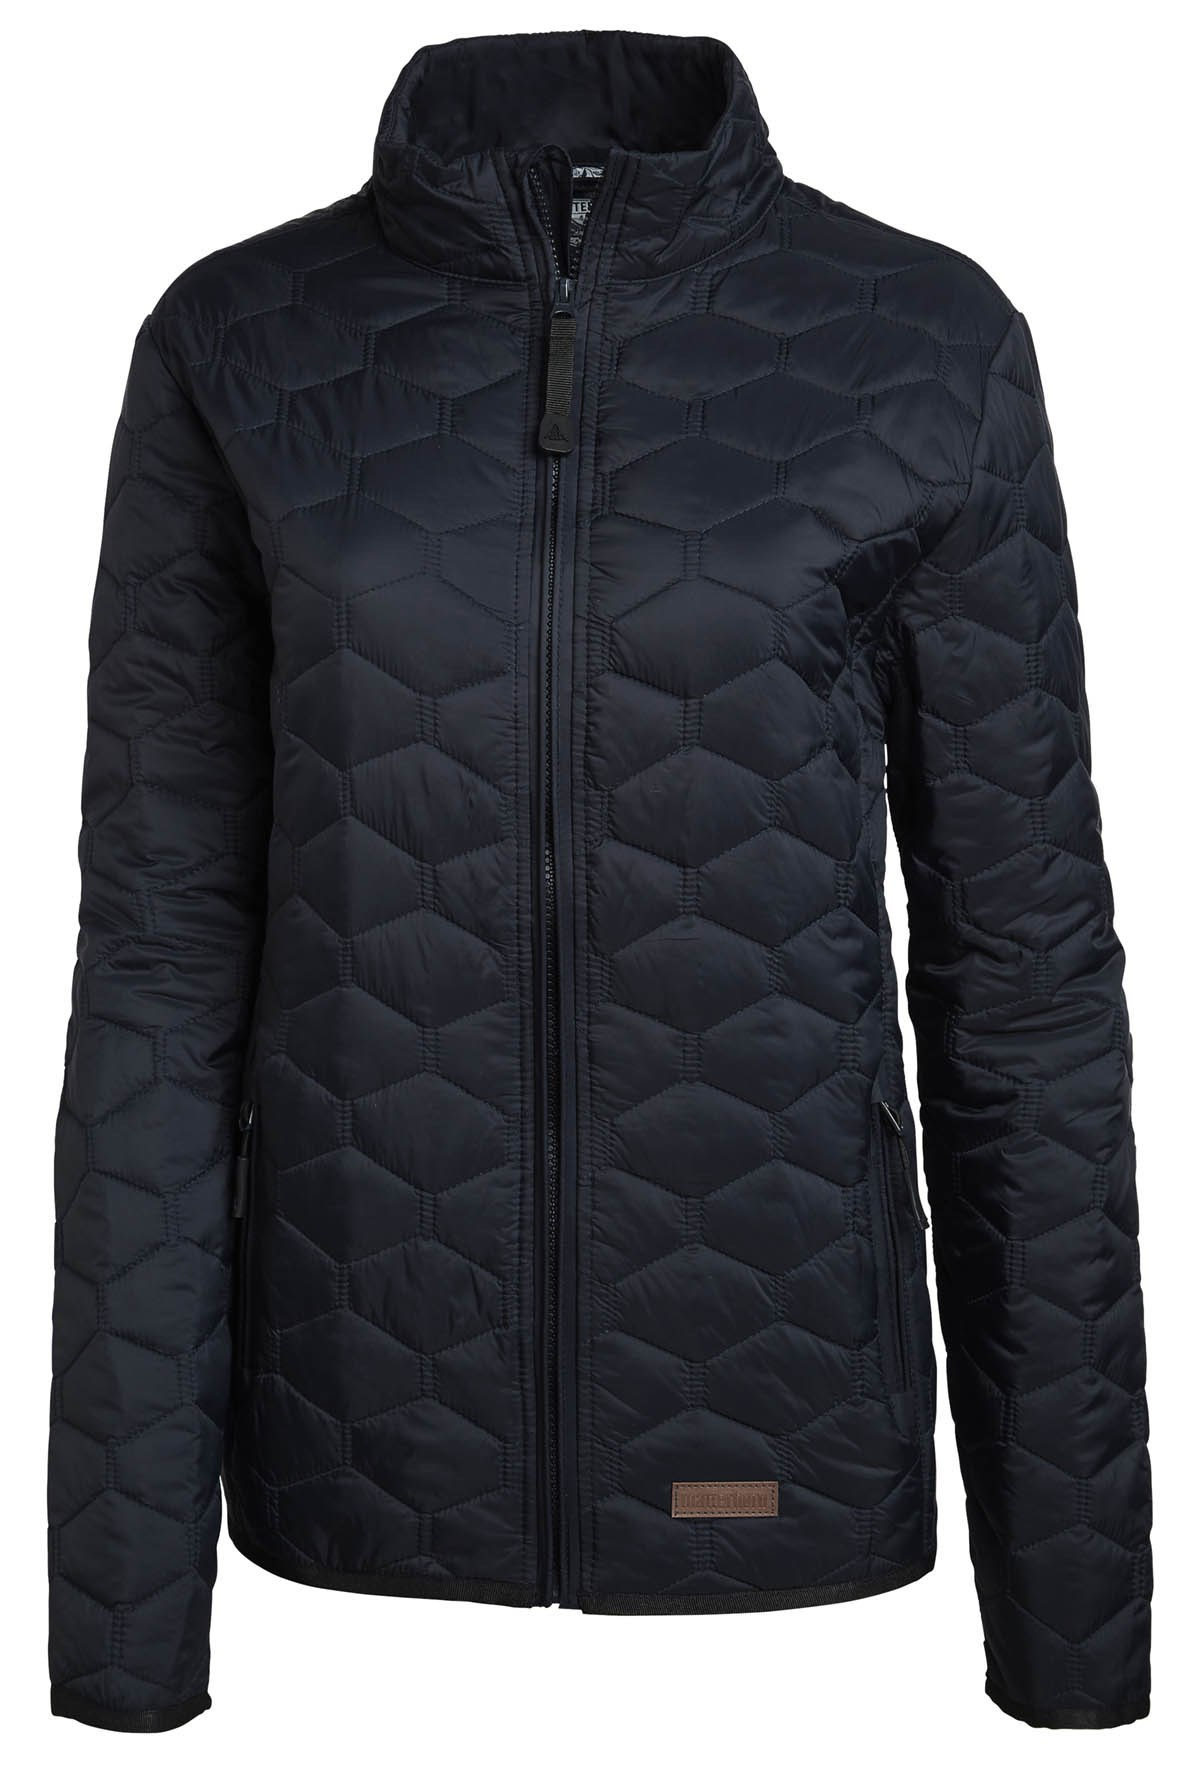 Matterhorn MH-734D Quilted Jacket Ladies Navy 34